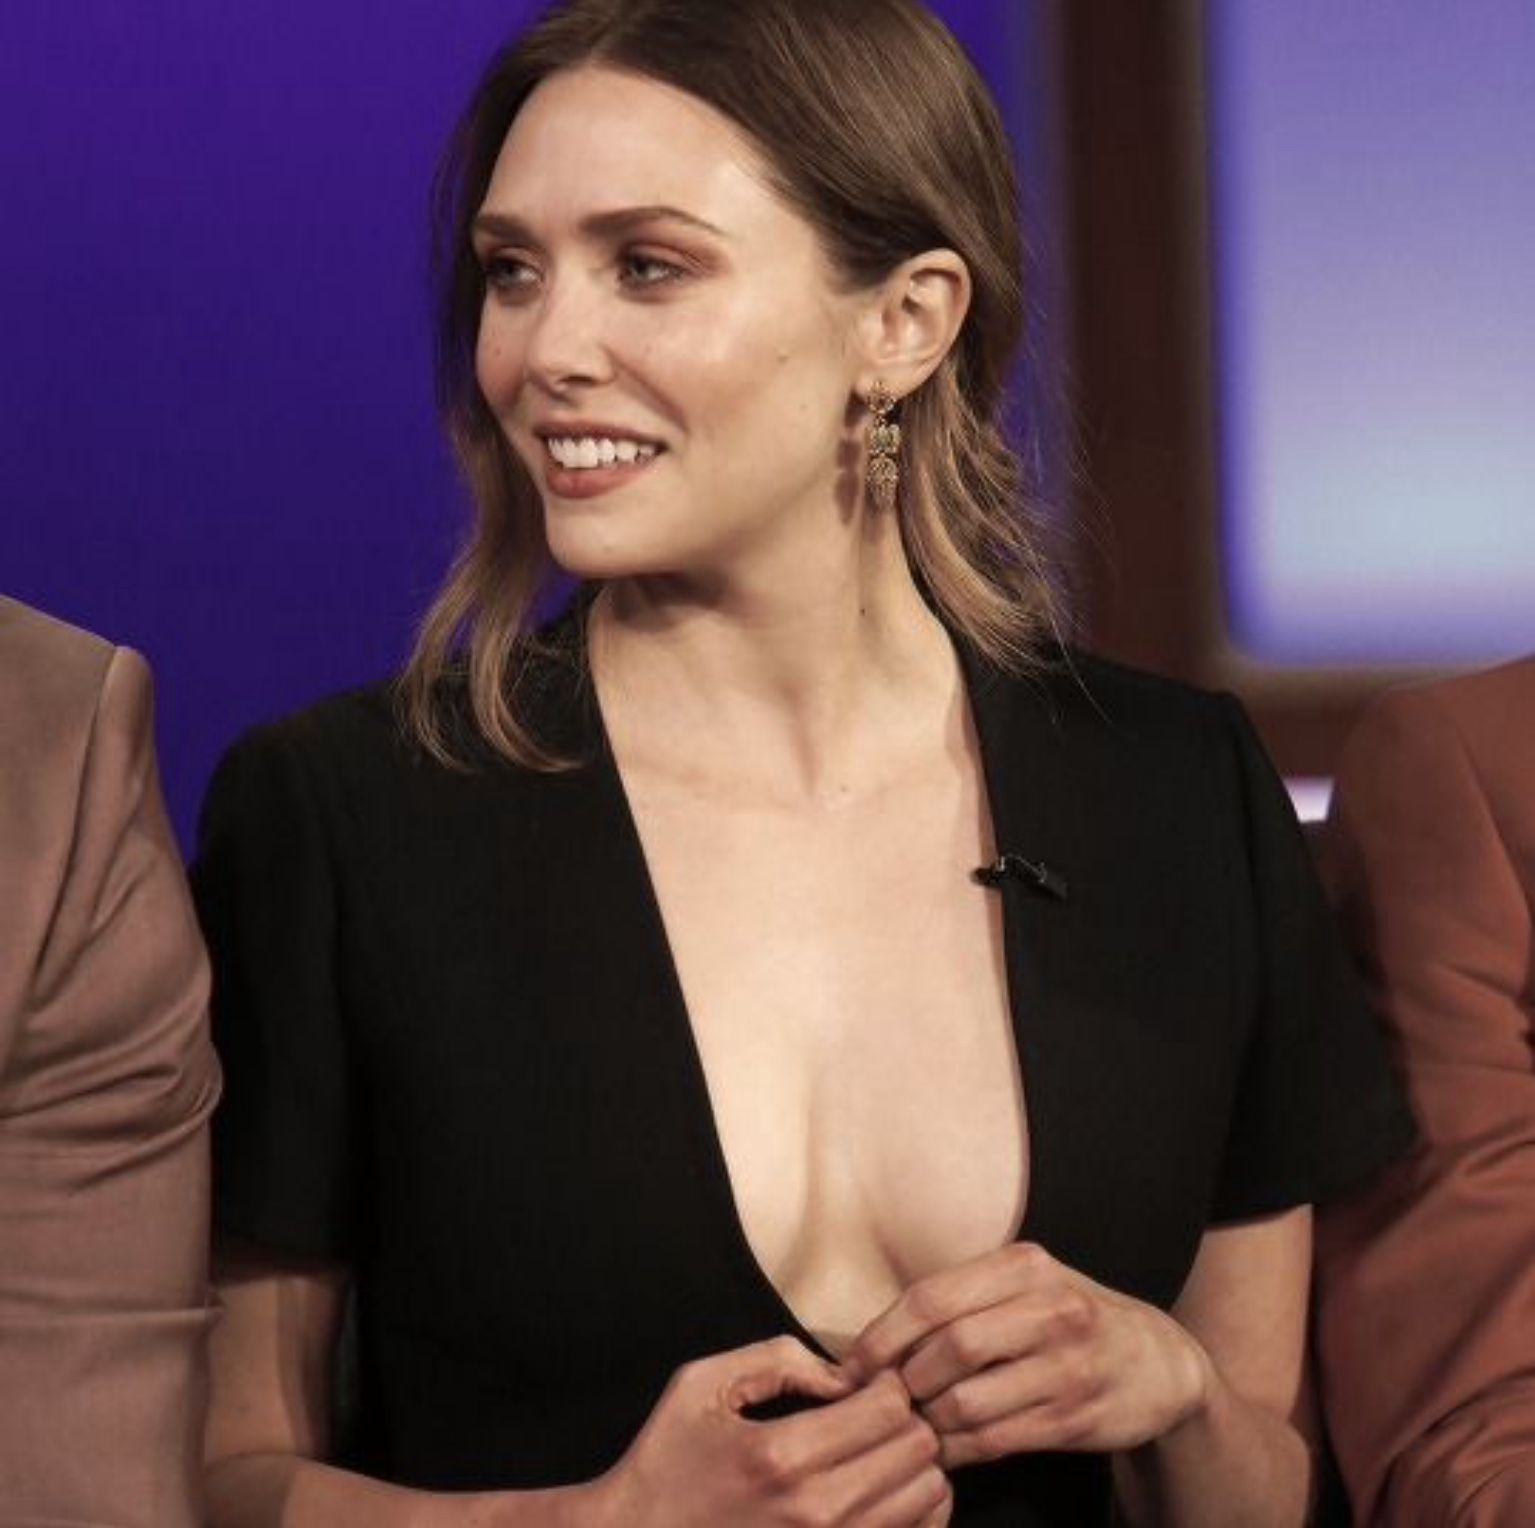 ELizabeth Olsen cleavages hot